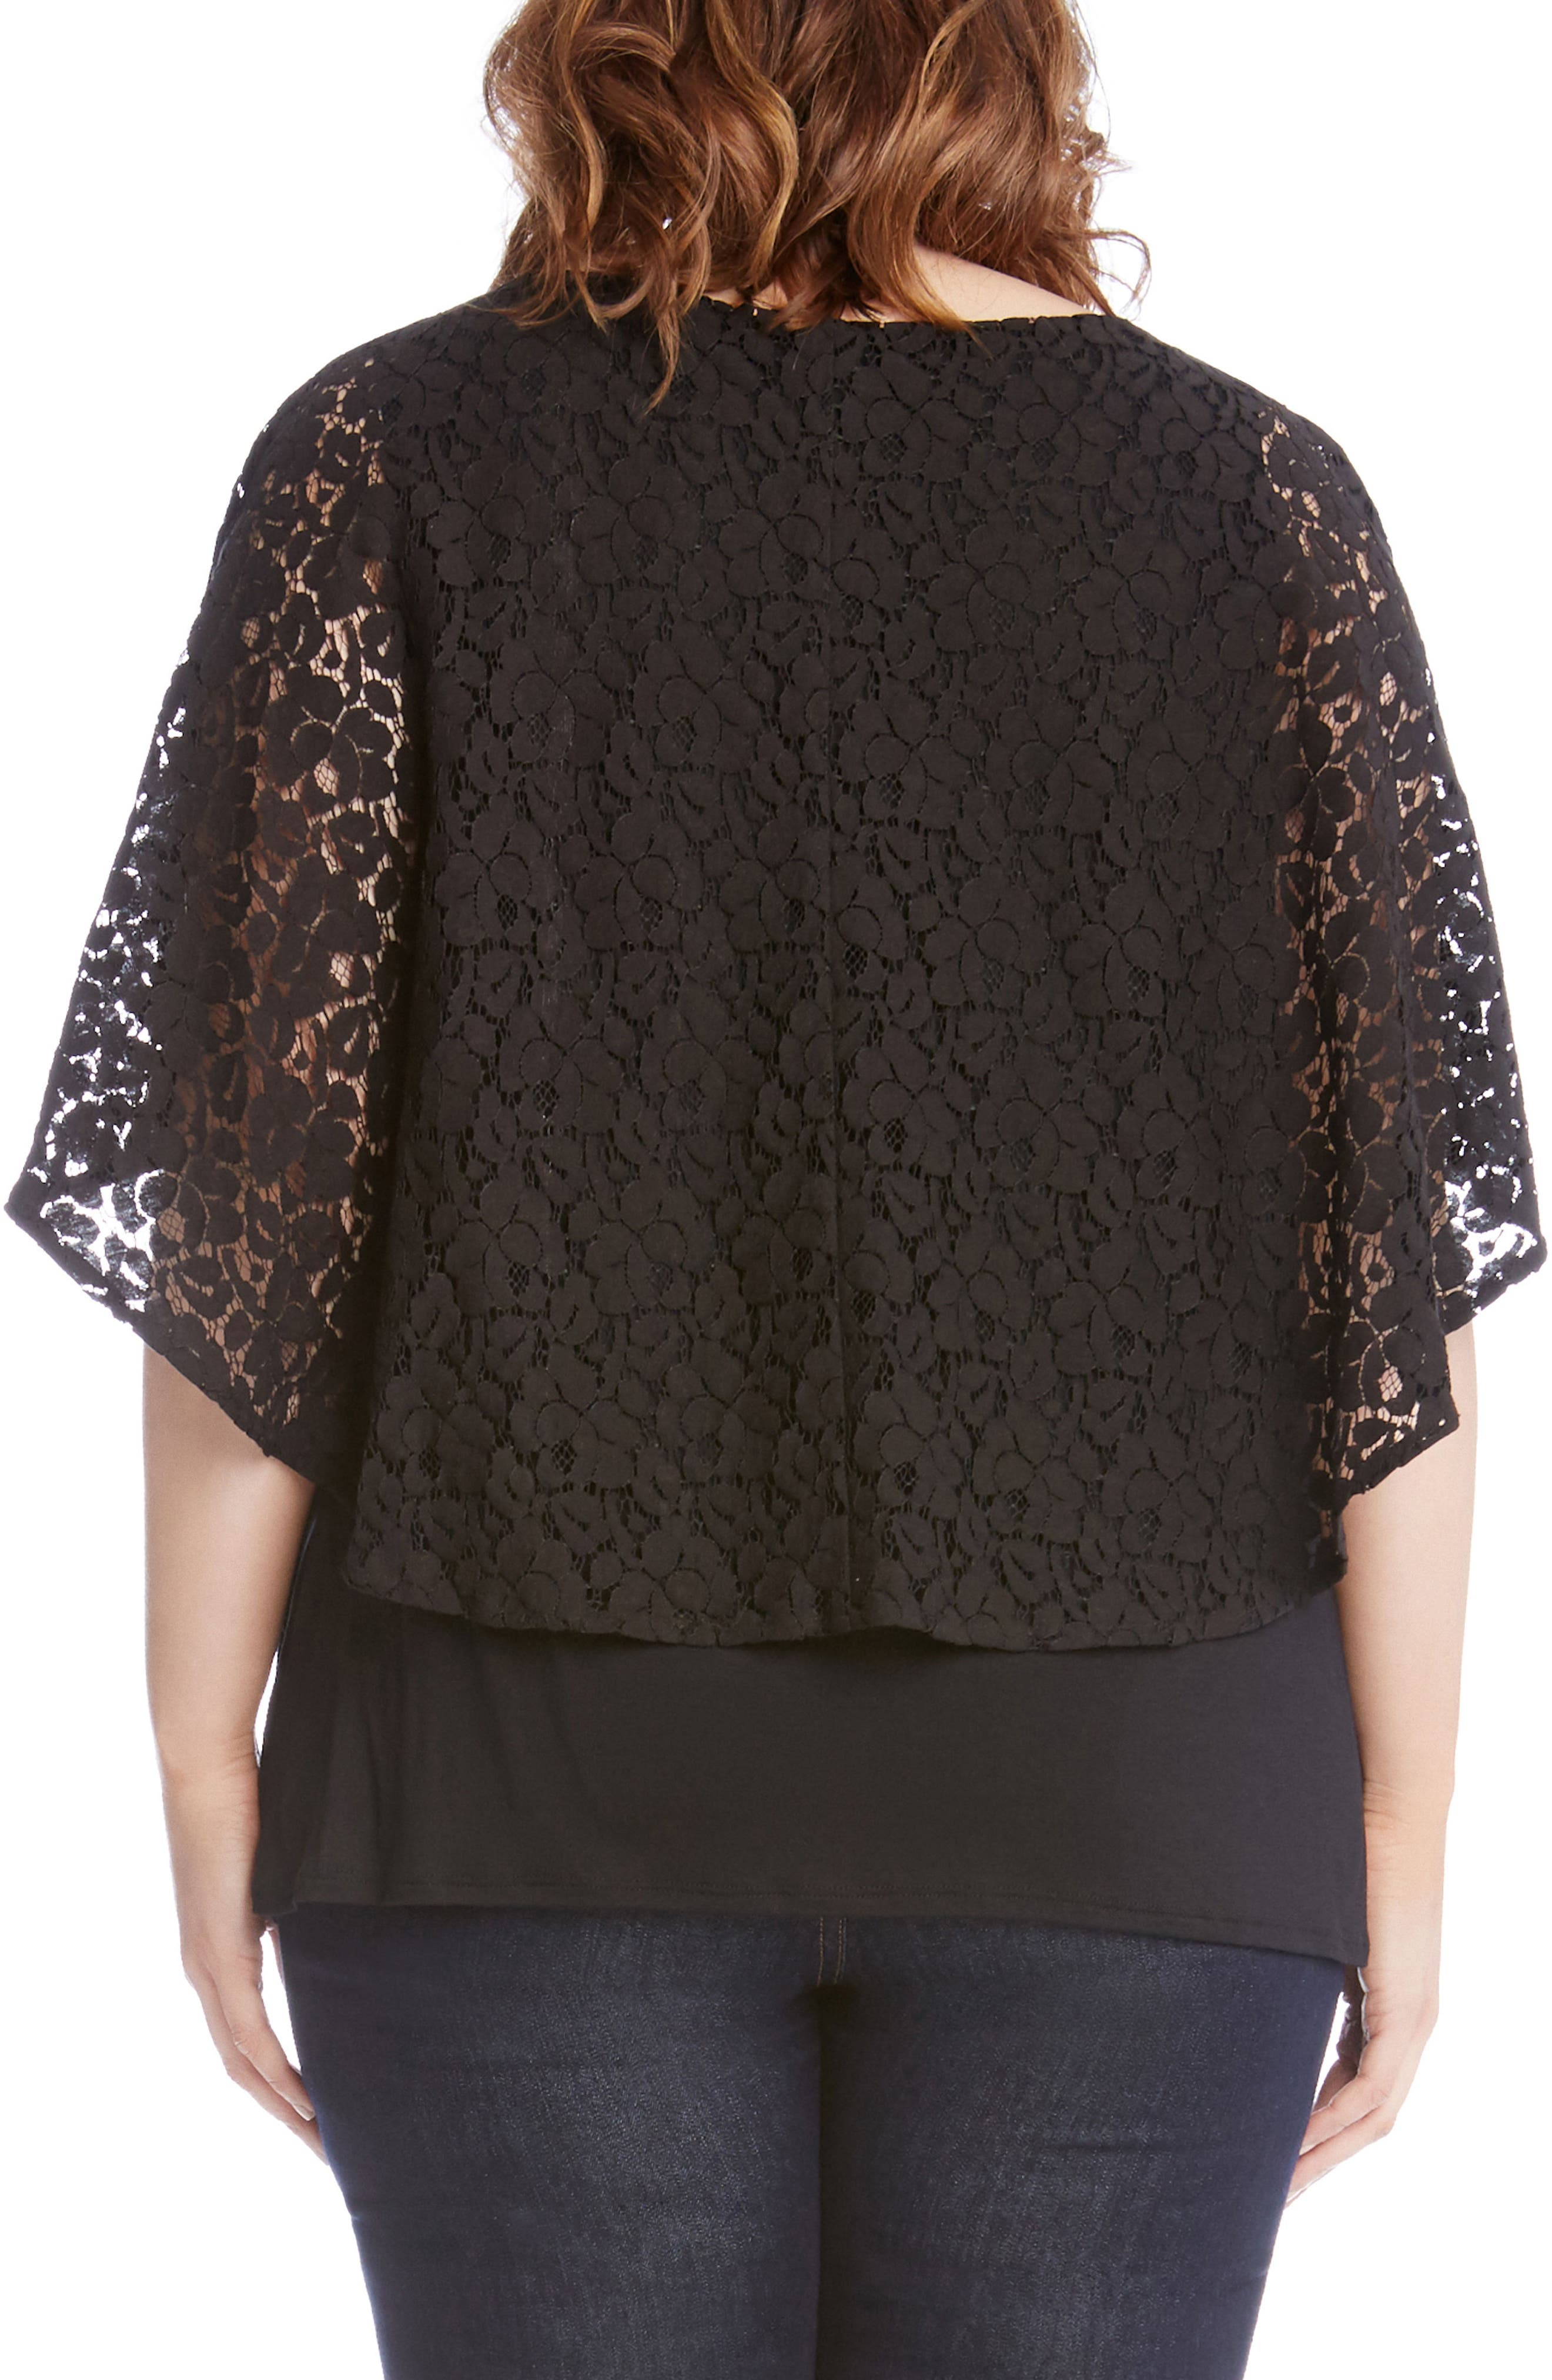 Lace Overlay Top,                             Alternate thumbnail 2, color,                             Black